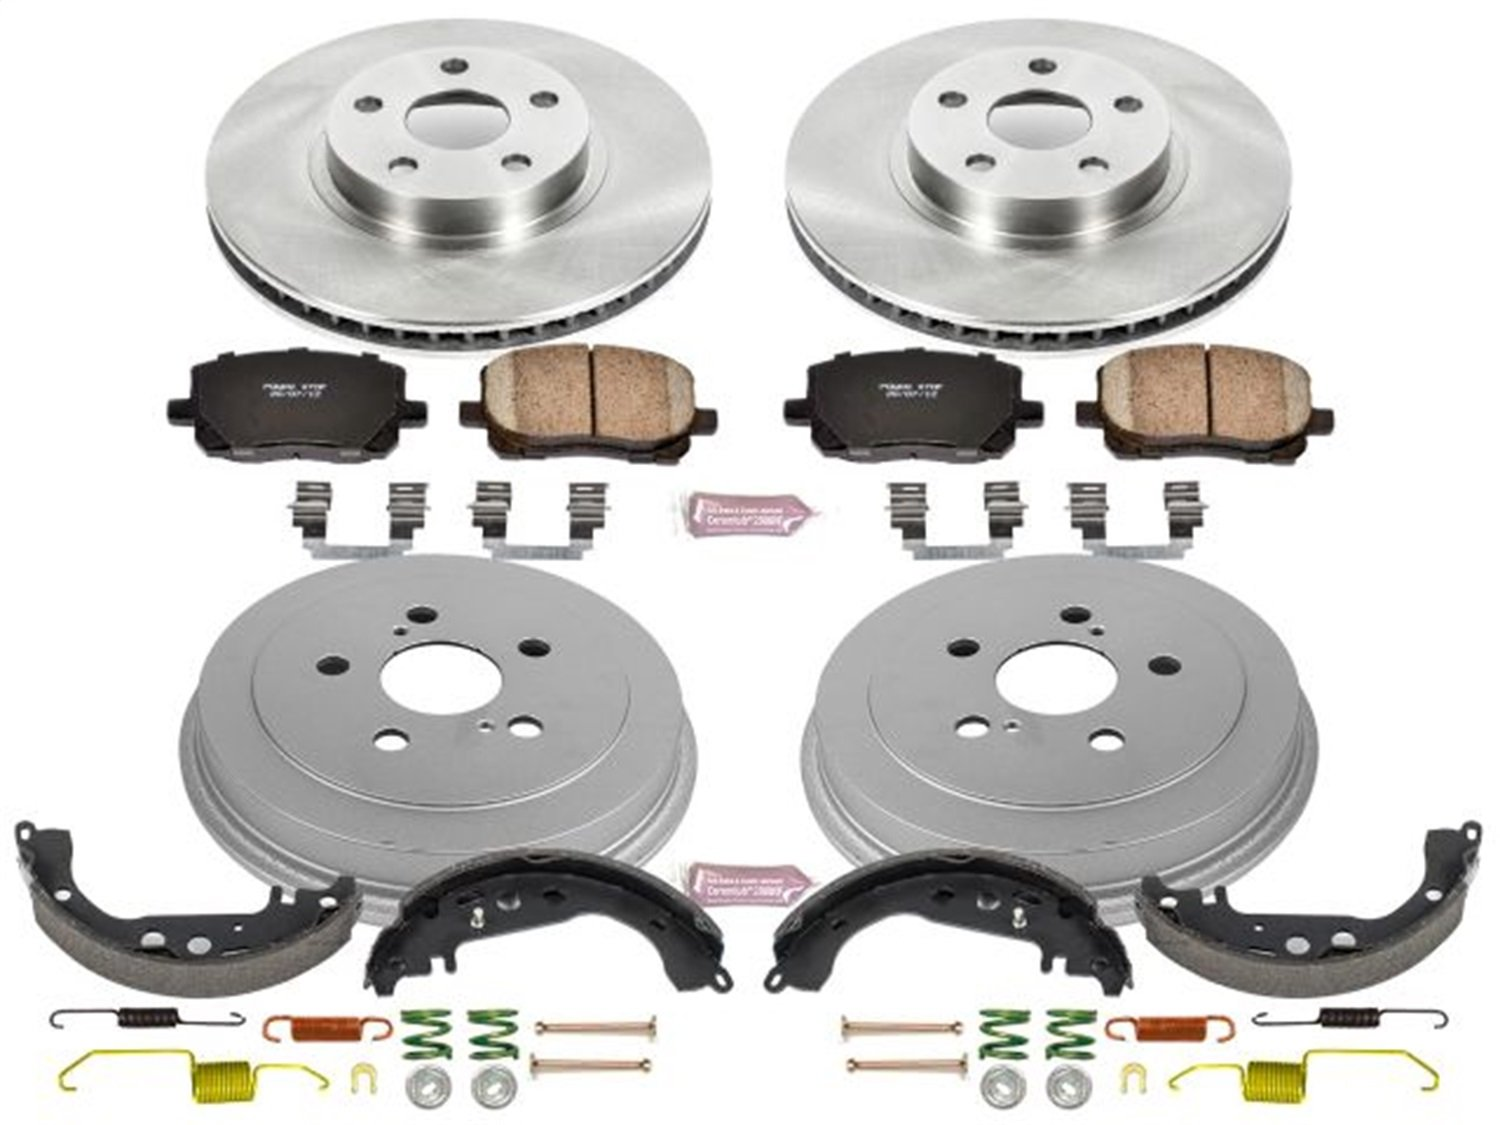 Power Stop Front & Rear KOE15200DK Autospecialty Daily Driver Pad, Rotor, Drum and Shoe Kits